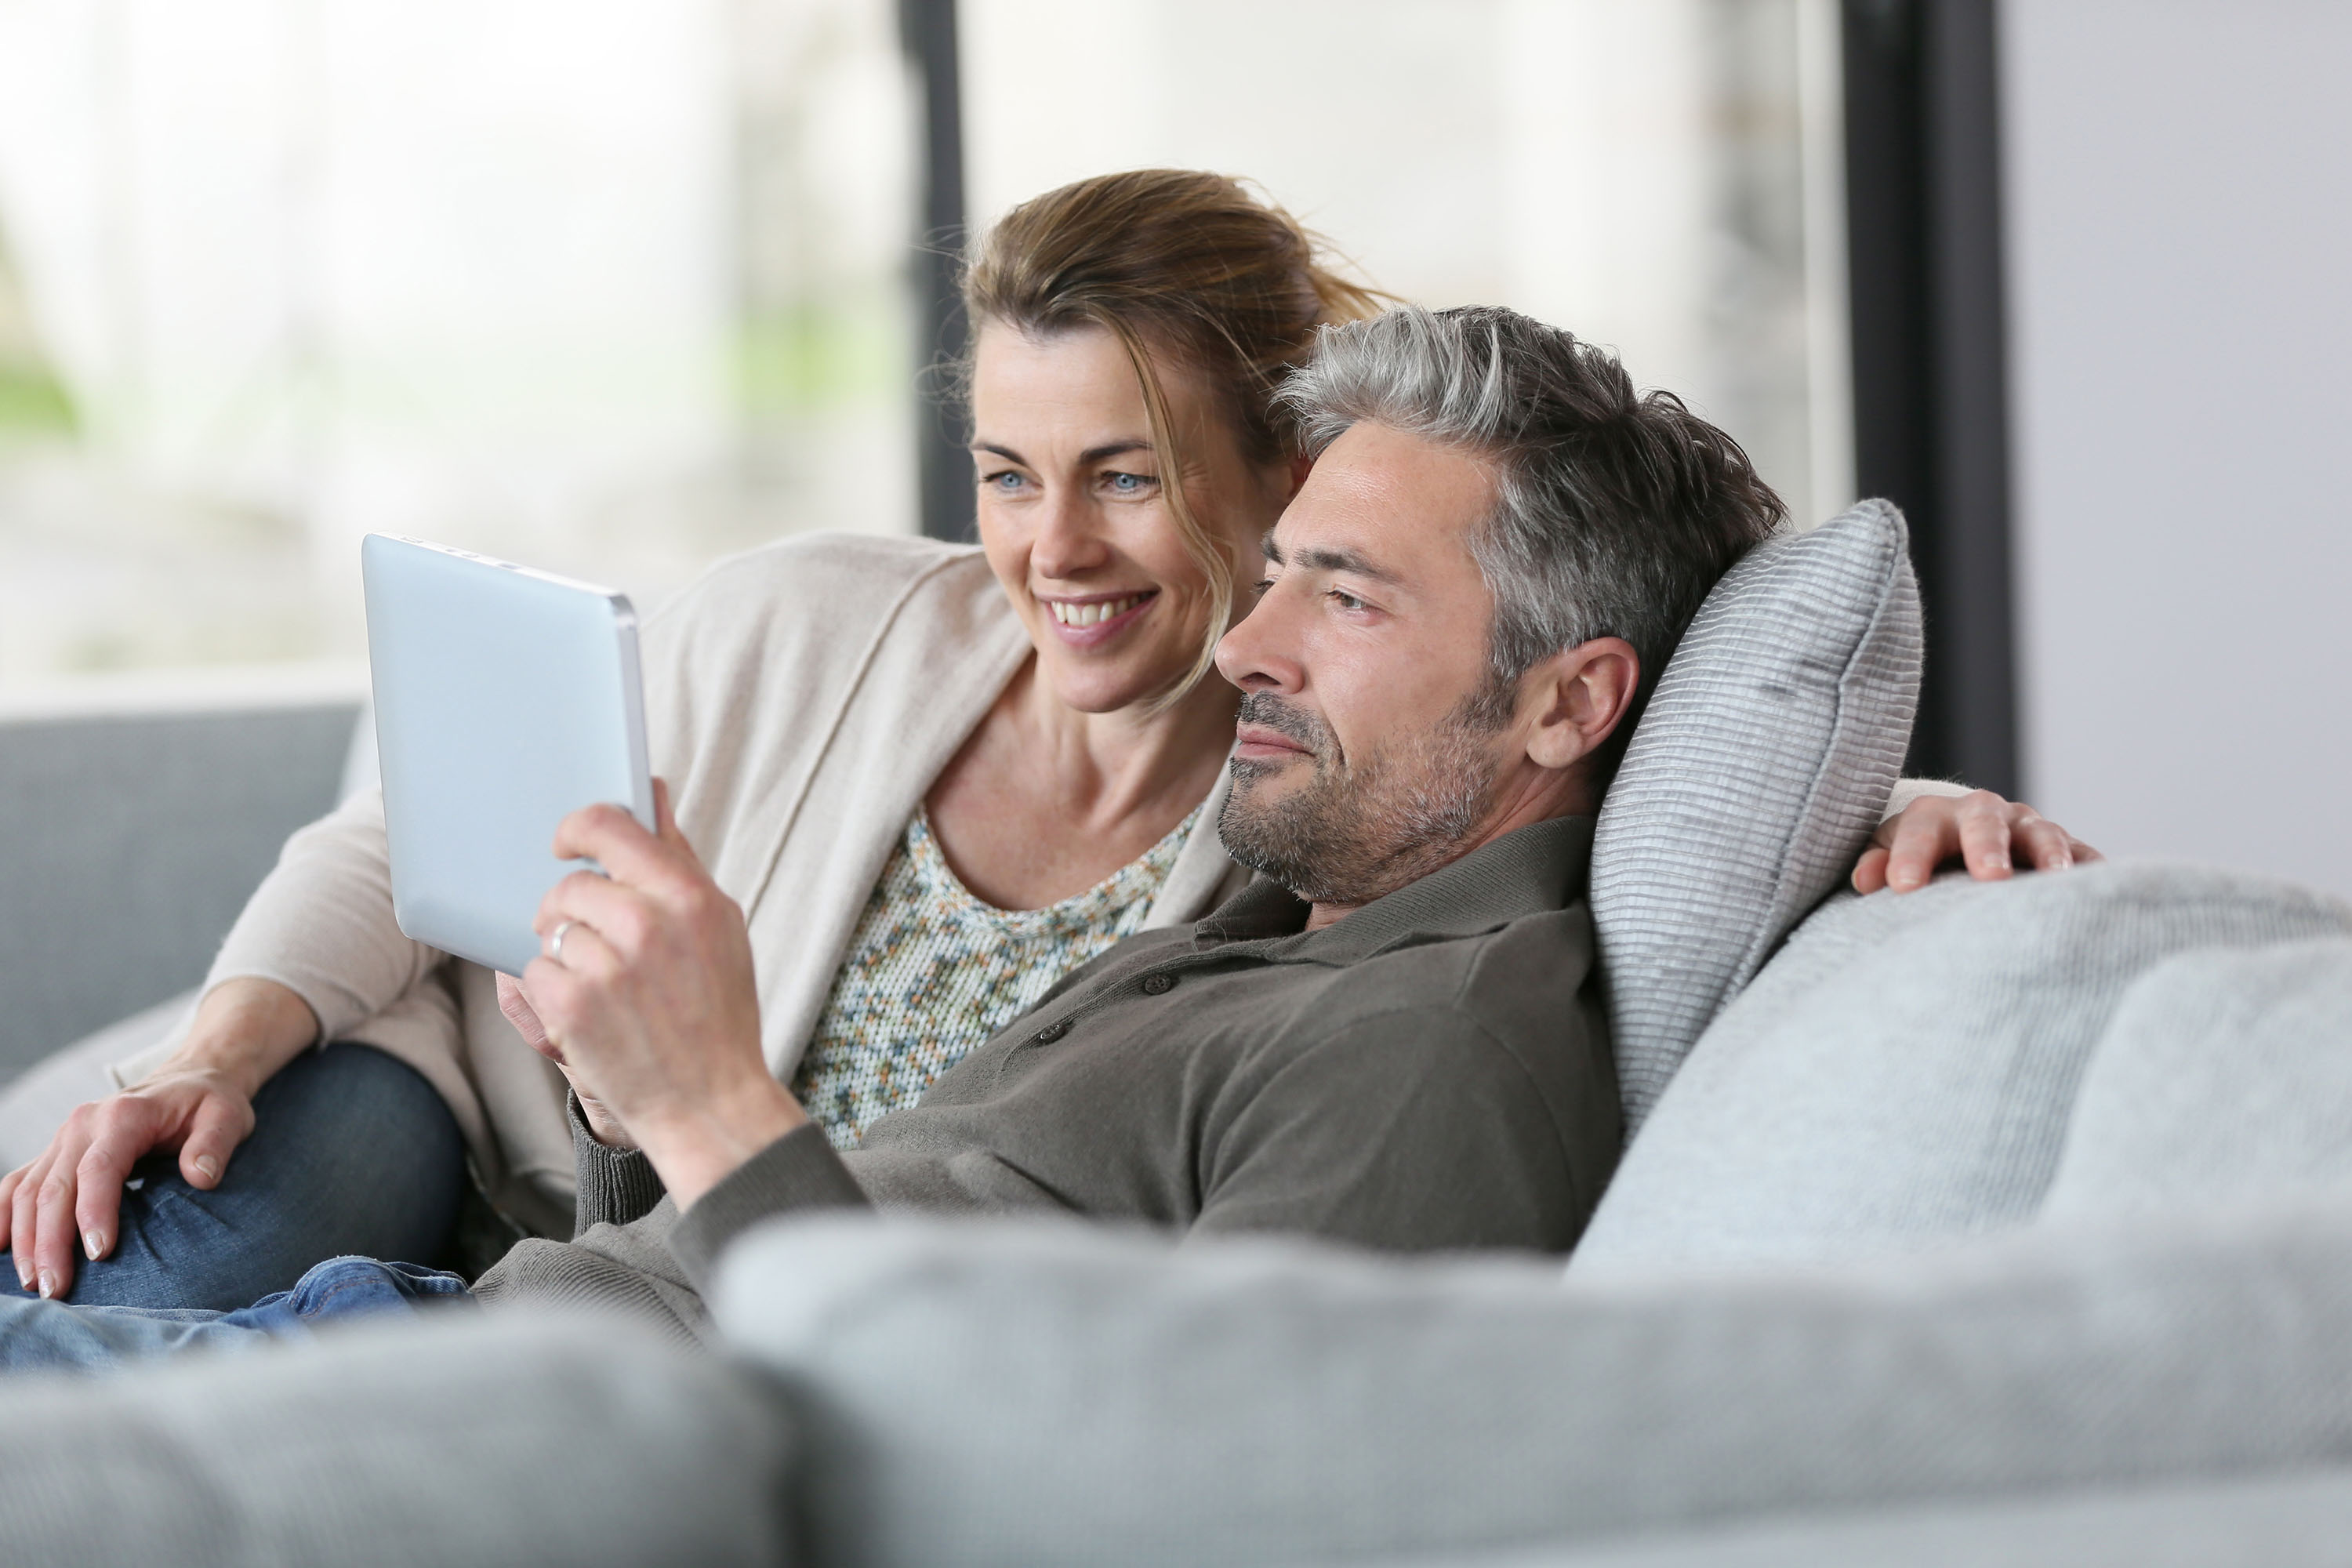 Review your estate plan in light of a new presidential administration